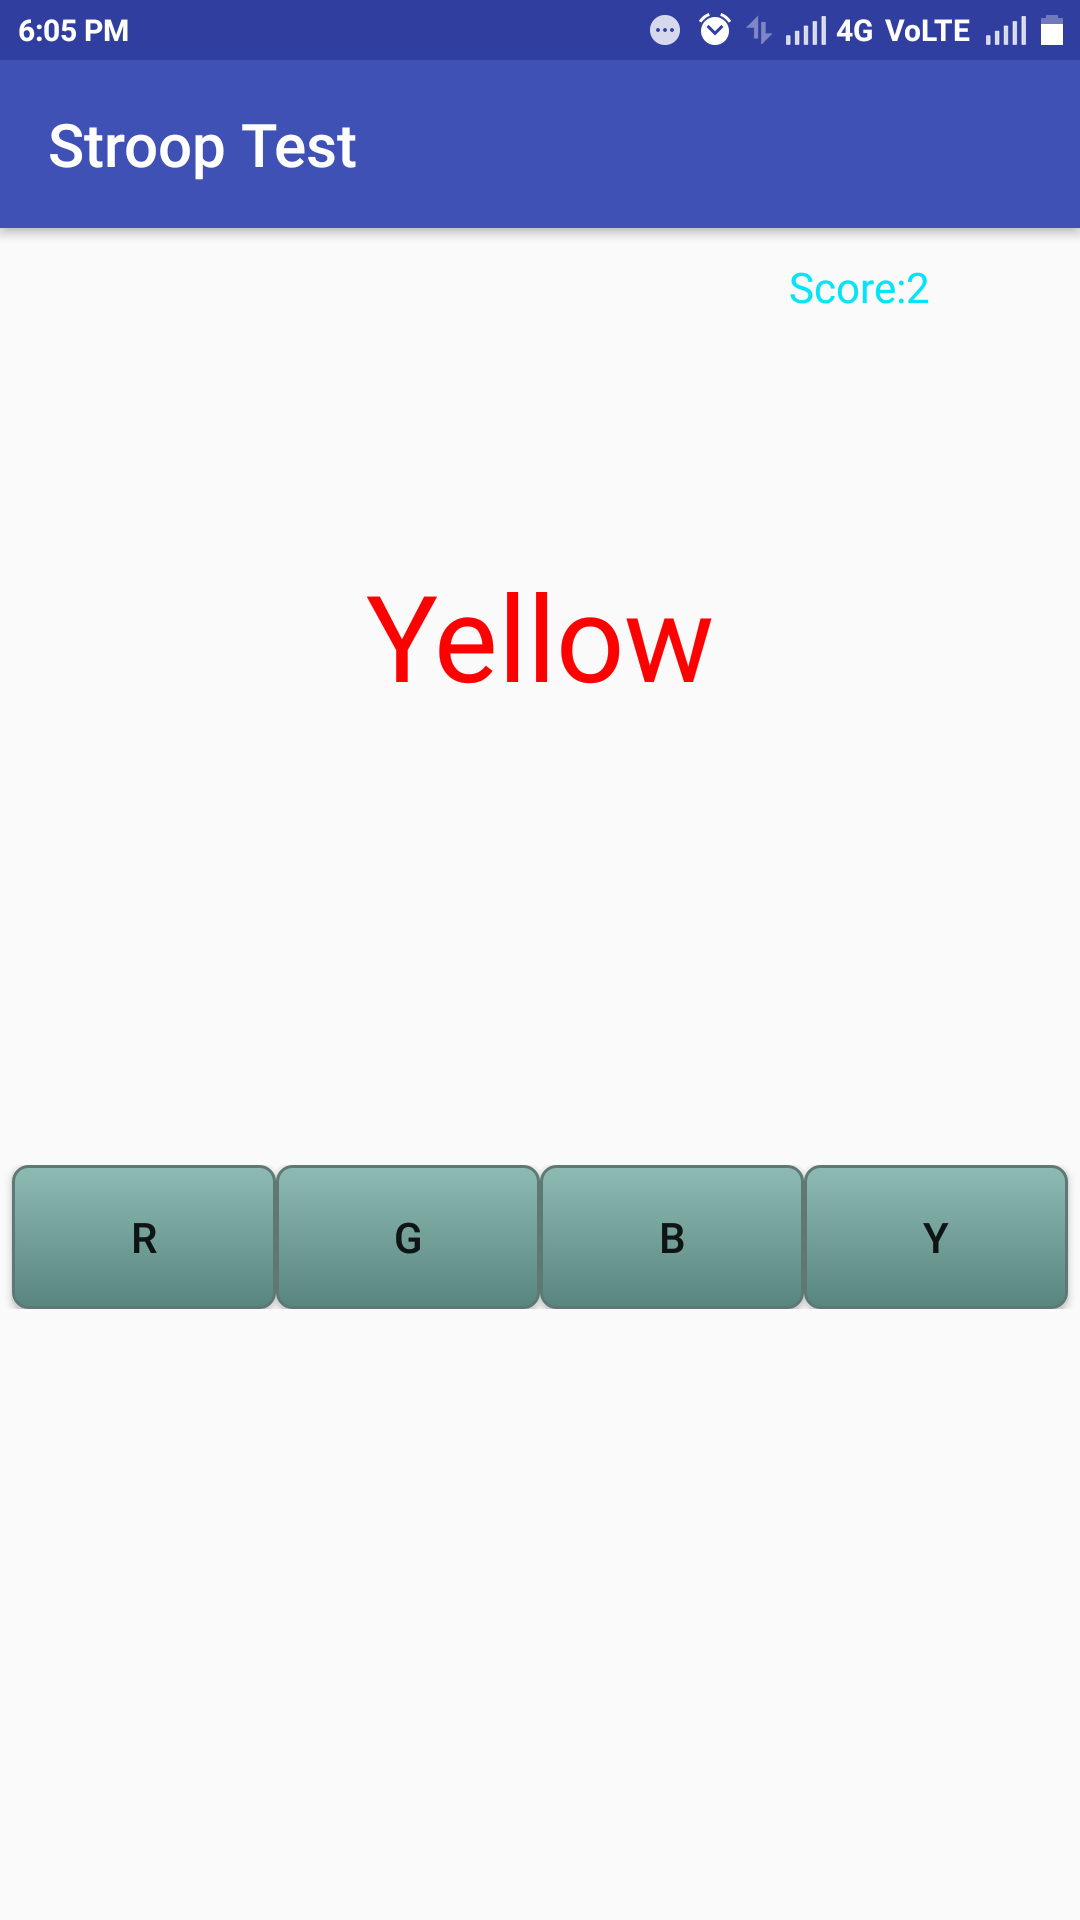 the stroop task test What is the stroop effect this is a test of mental speed and flexibility that was first described in 1929 in germany and then published in english by stroop in 1935.